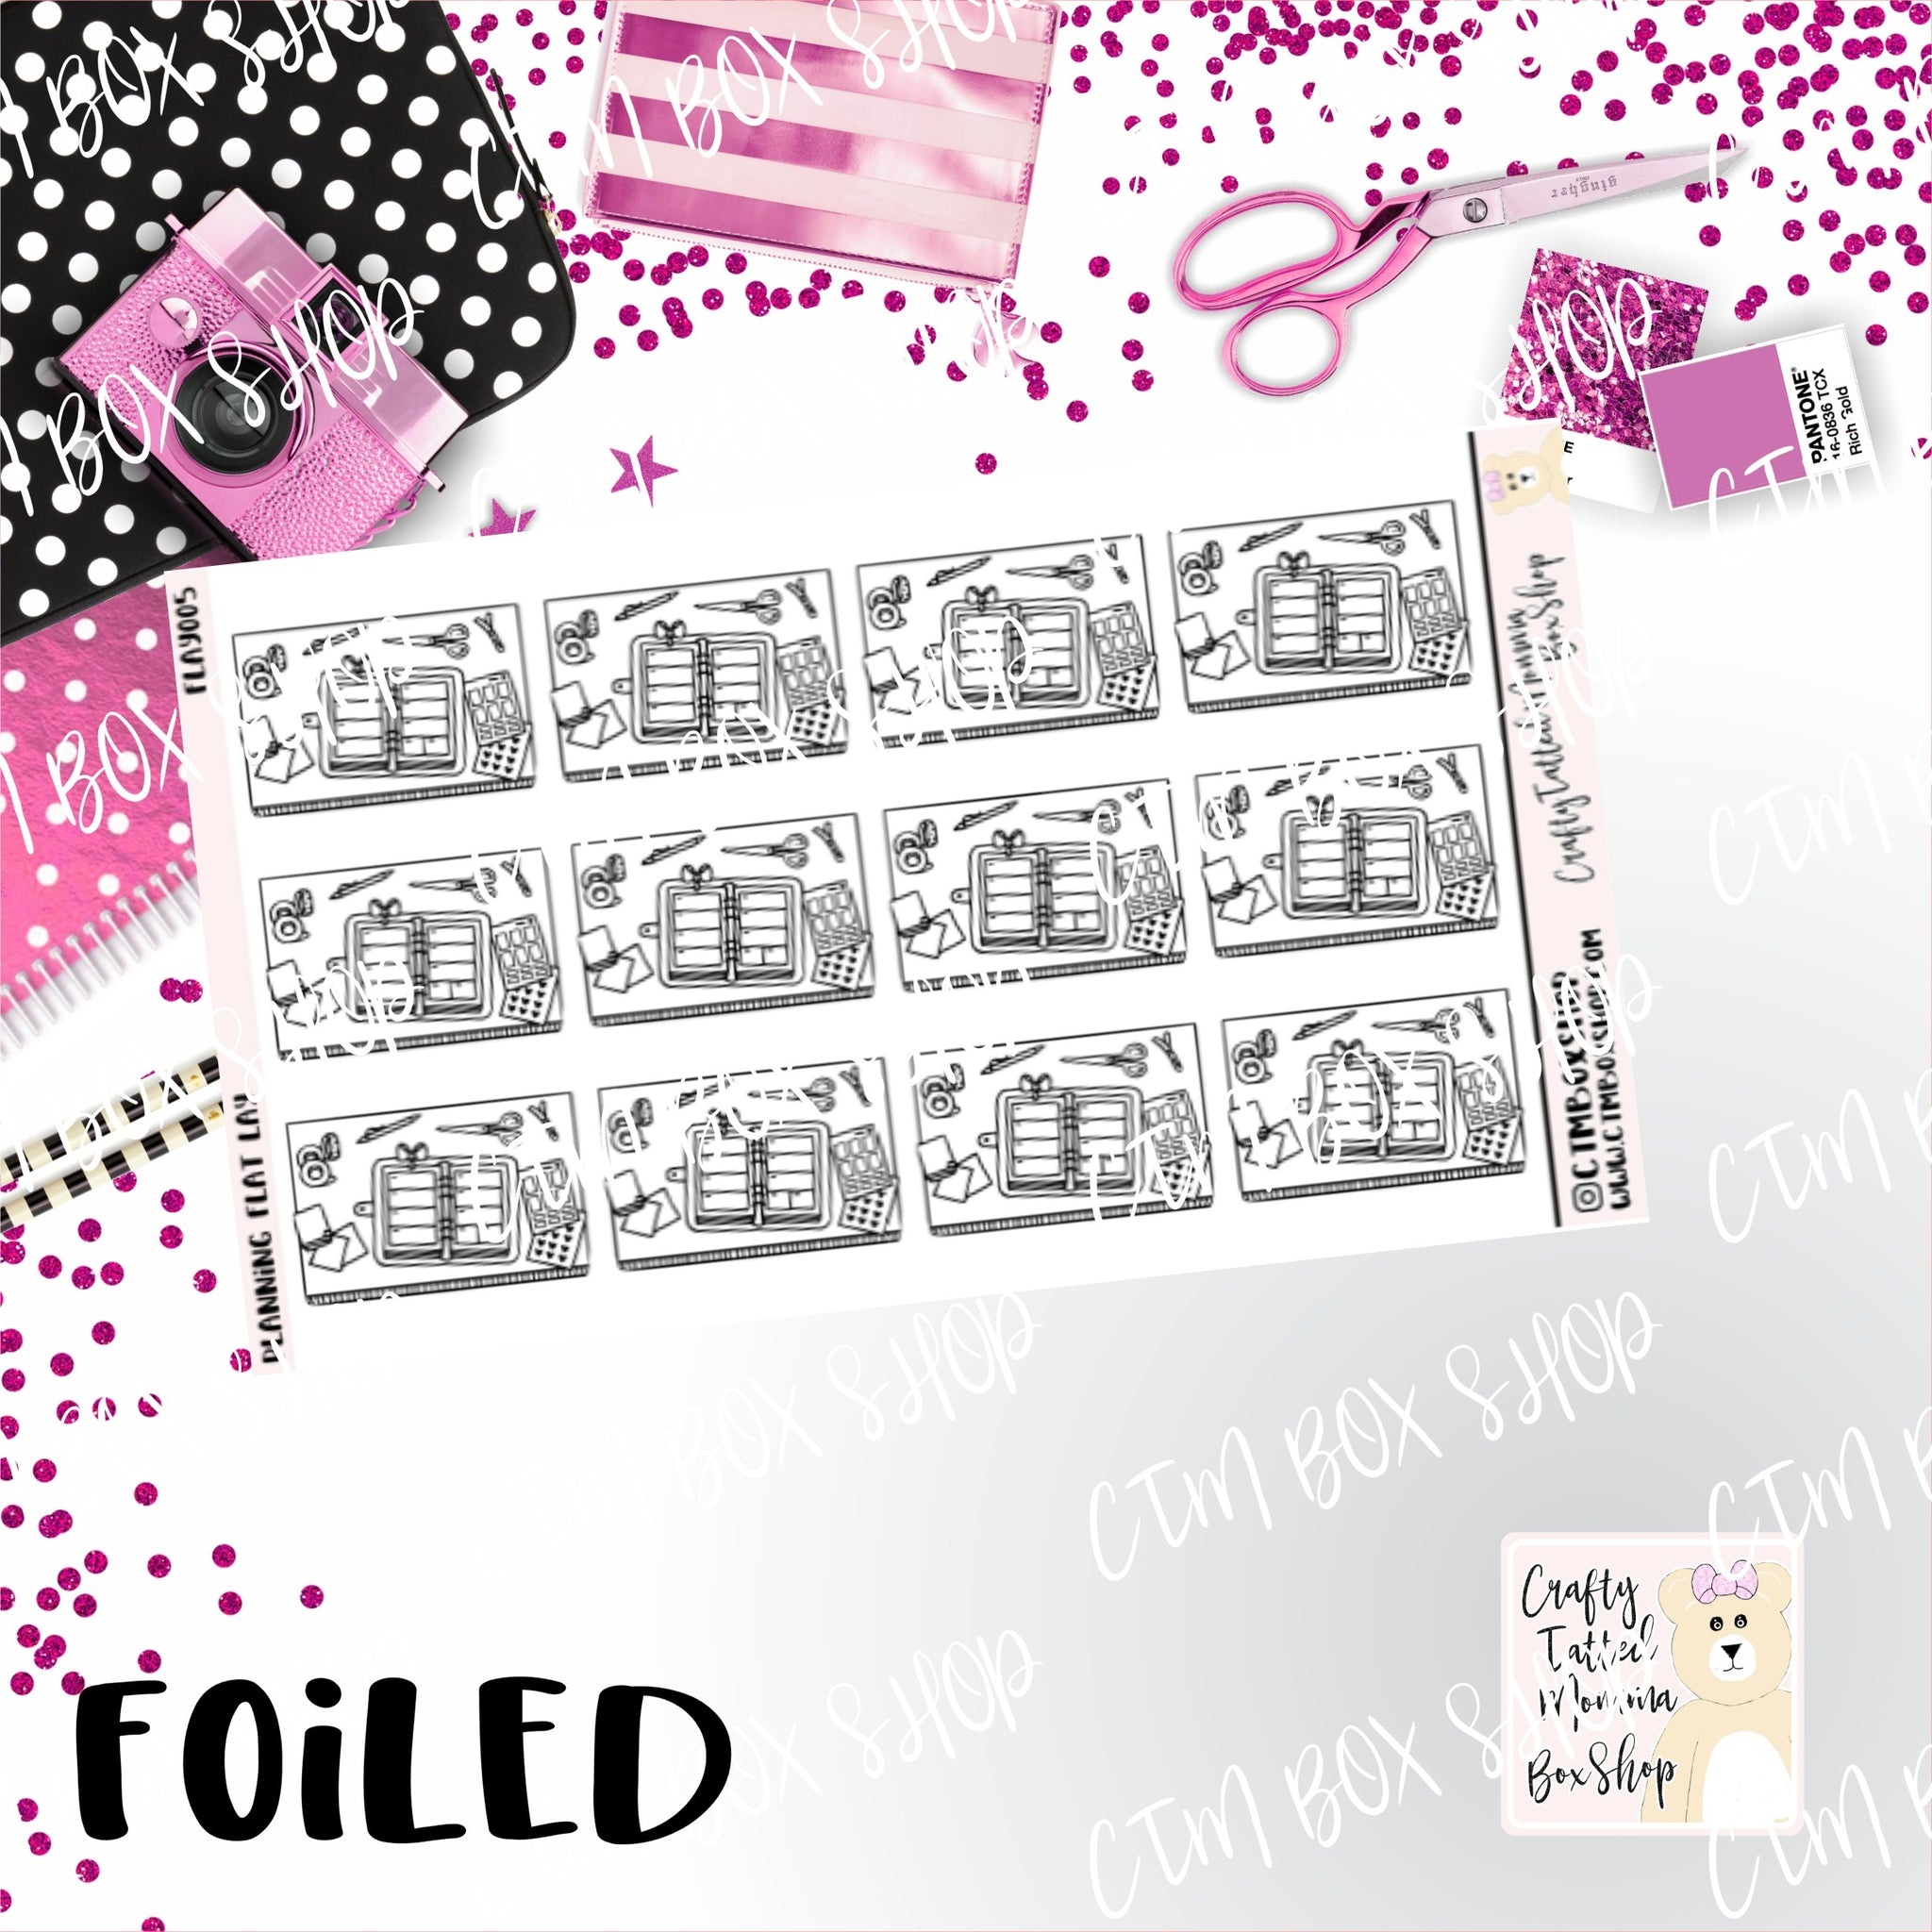 Foiled Planning Flat Lay Planner Stickers  / Planning Stickers / Foiled Stickers / Planner Stickers / Flat Lay Stickers